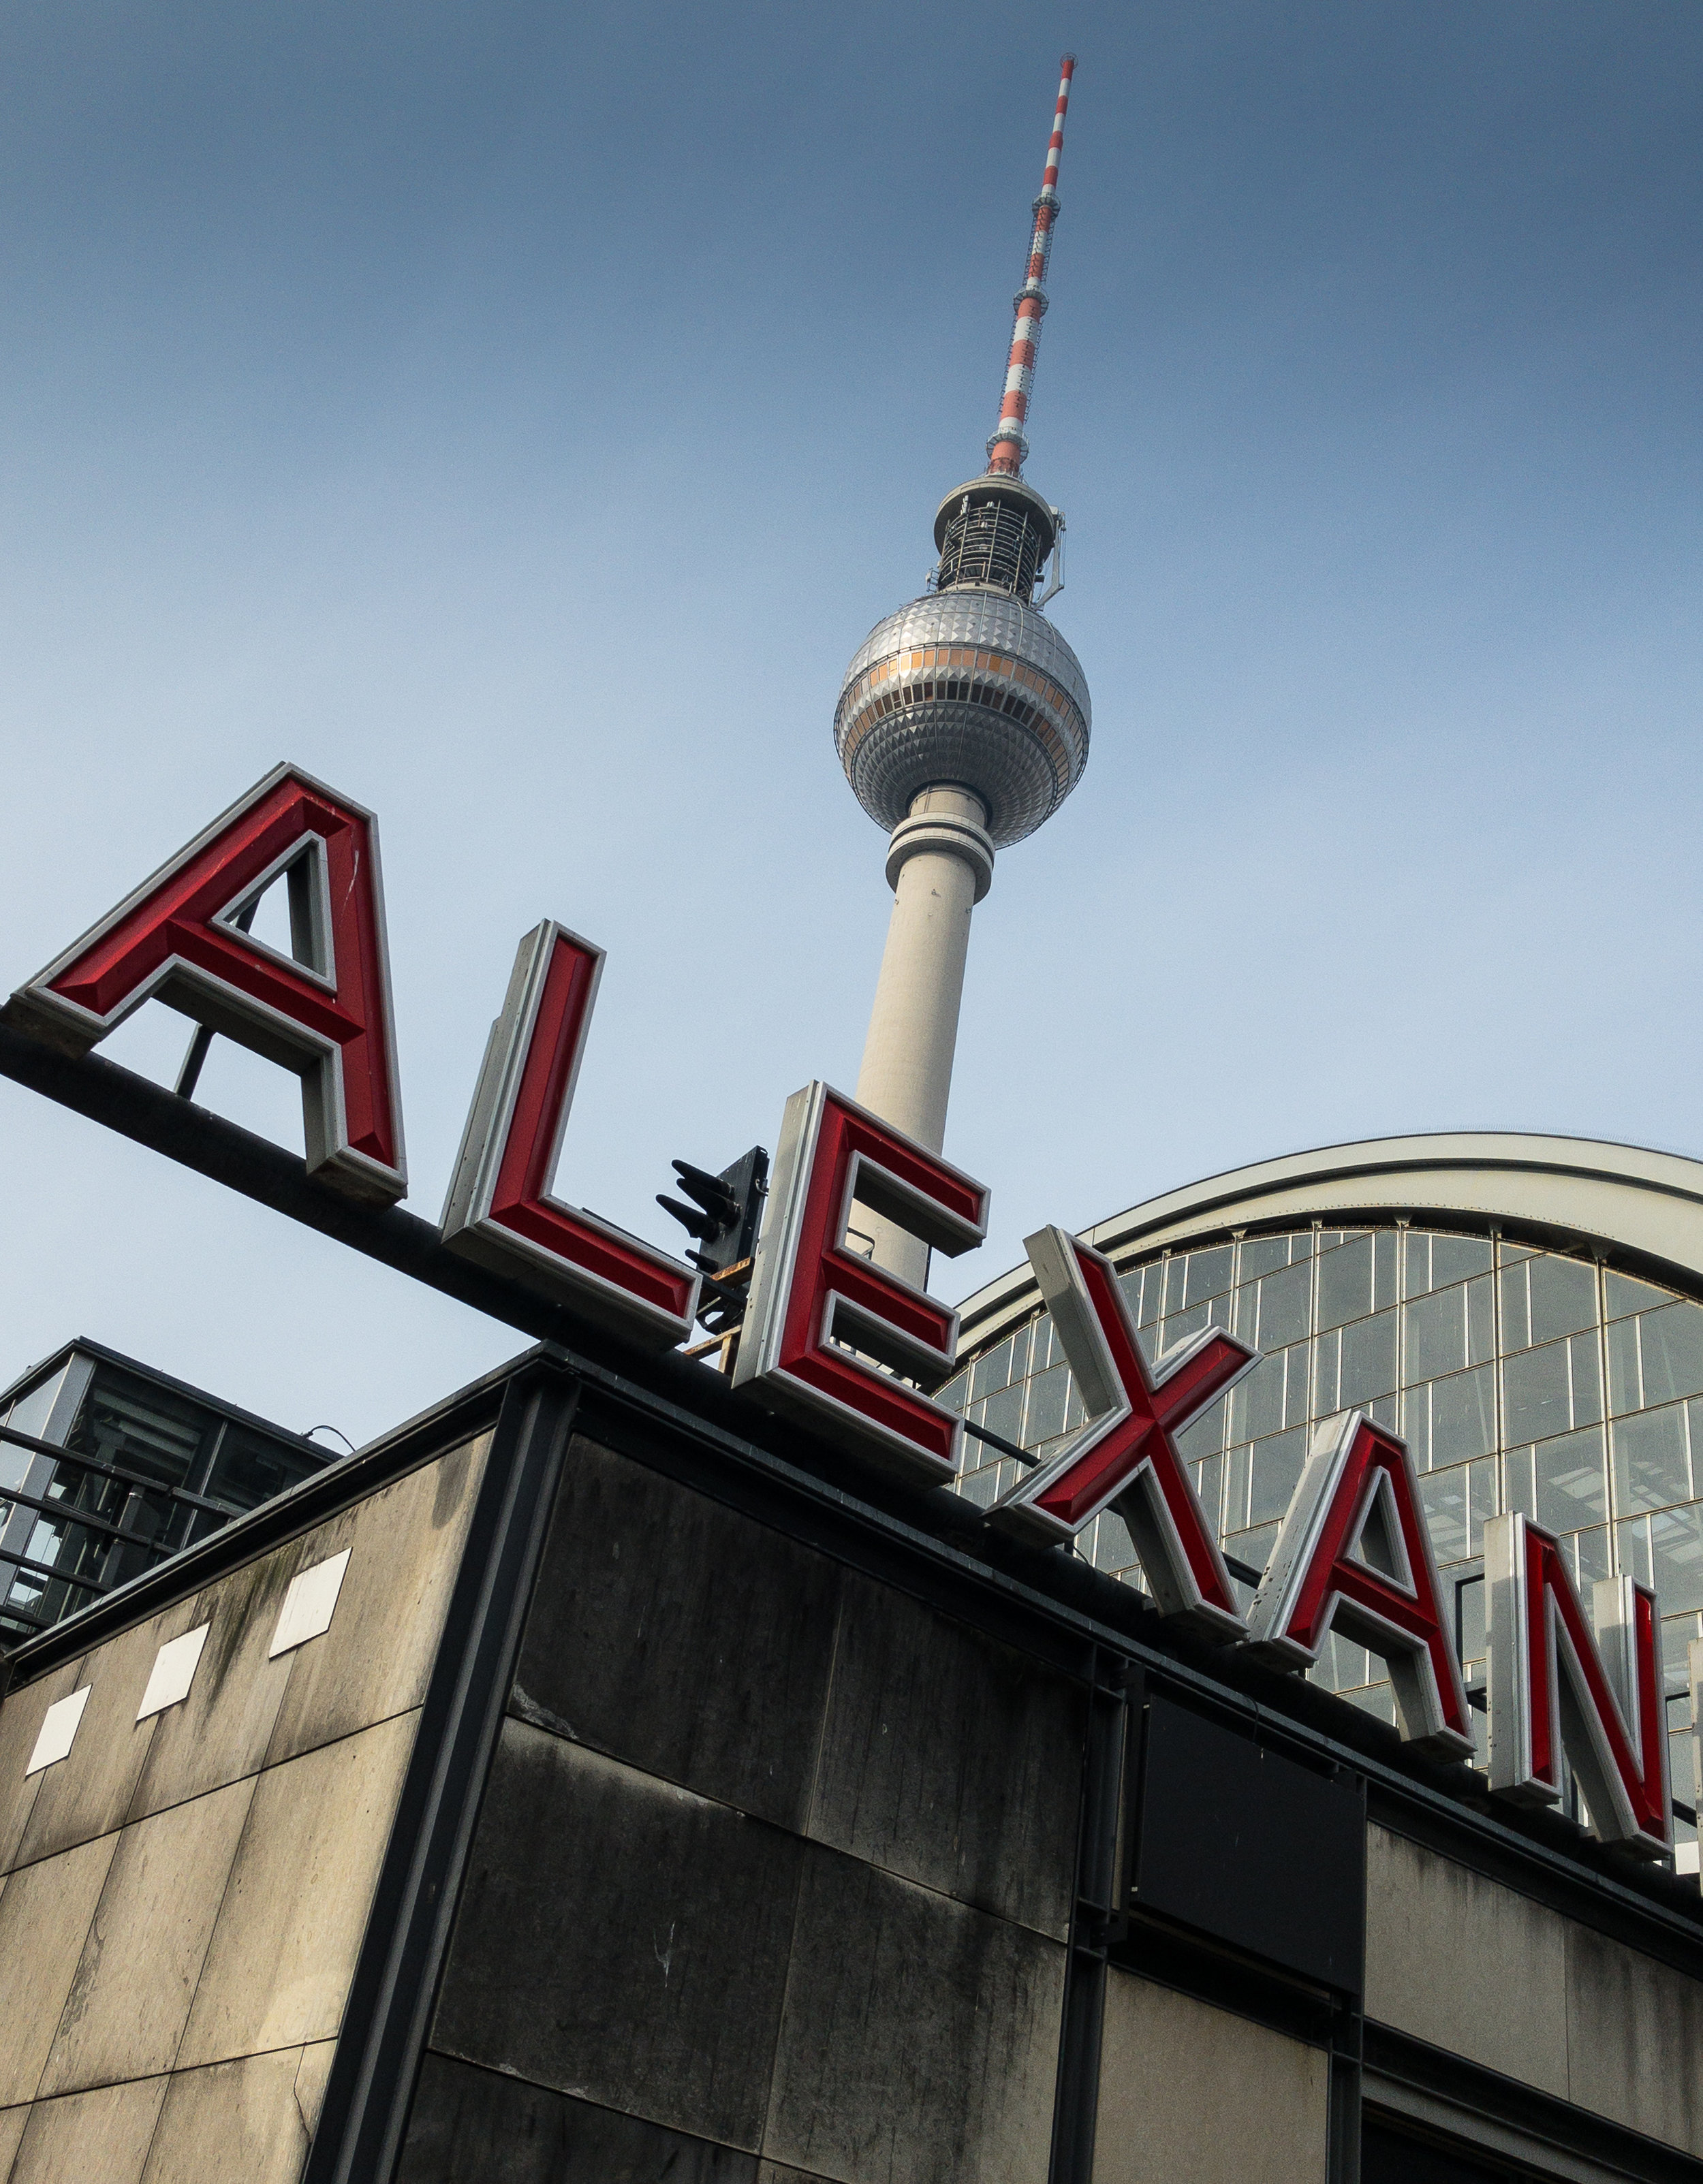 Alexanderplatz, my first stop coming from the airport